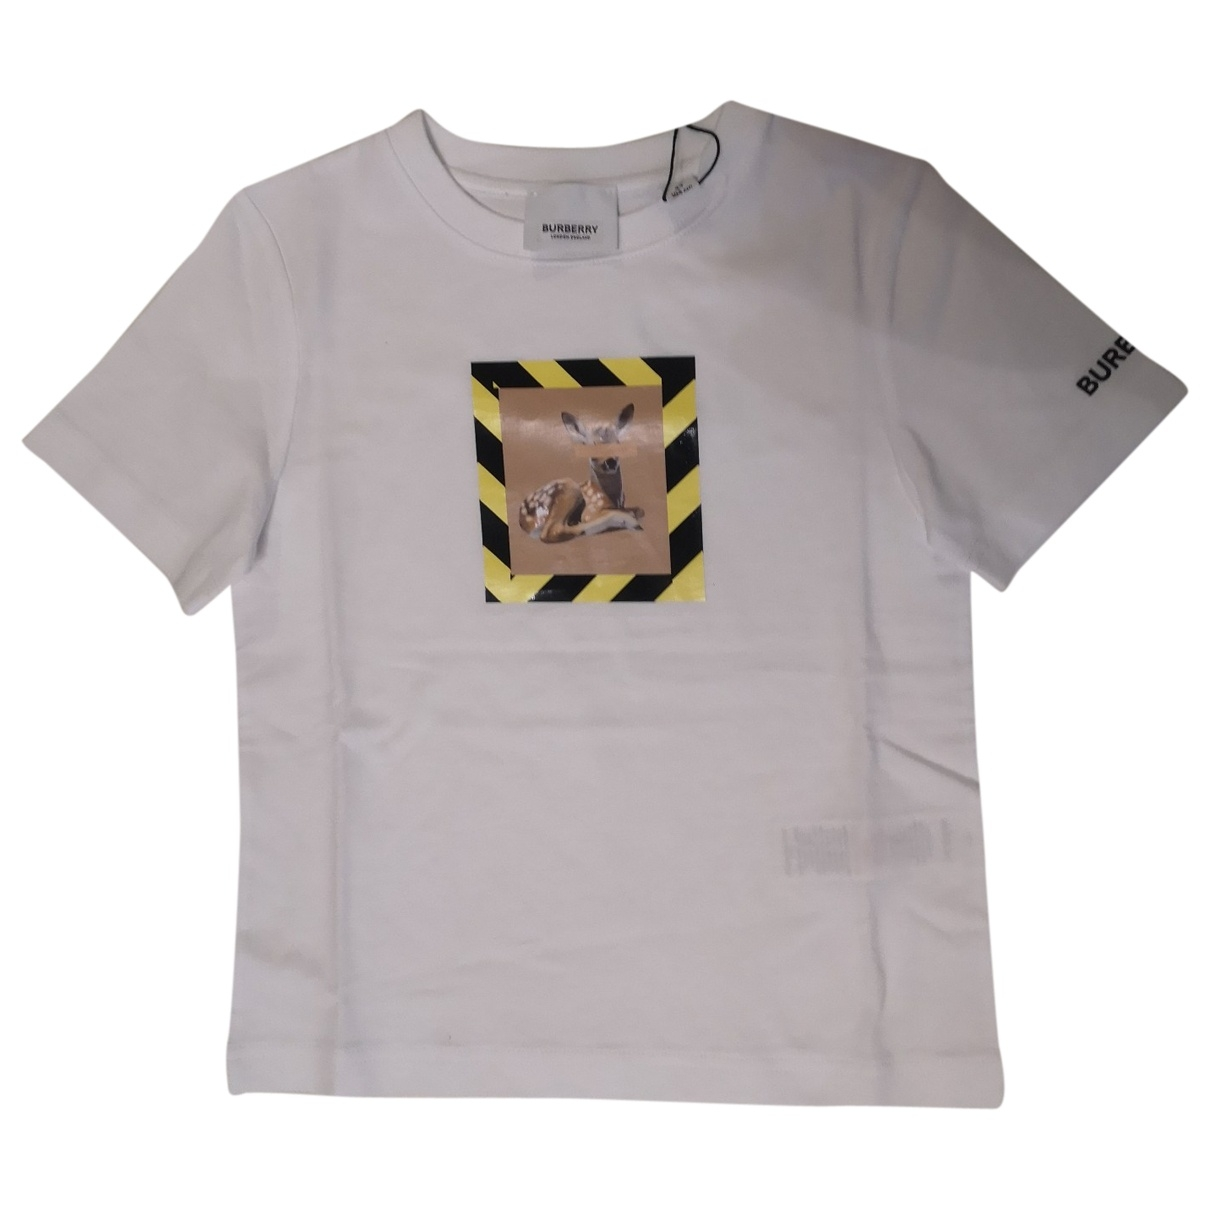 Burberry \N White Cotton  top for Kids 4 years - up to 102cm FR